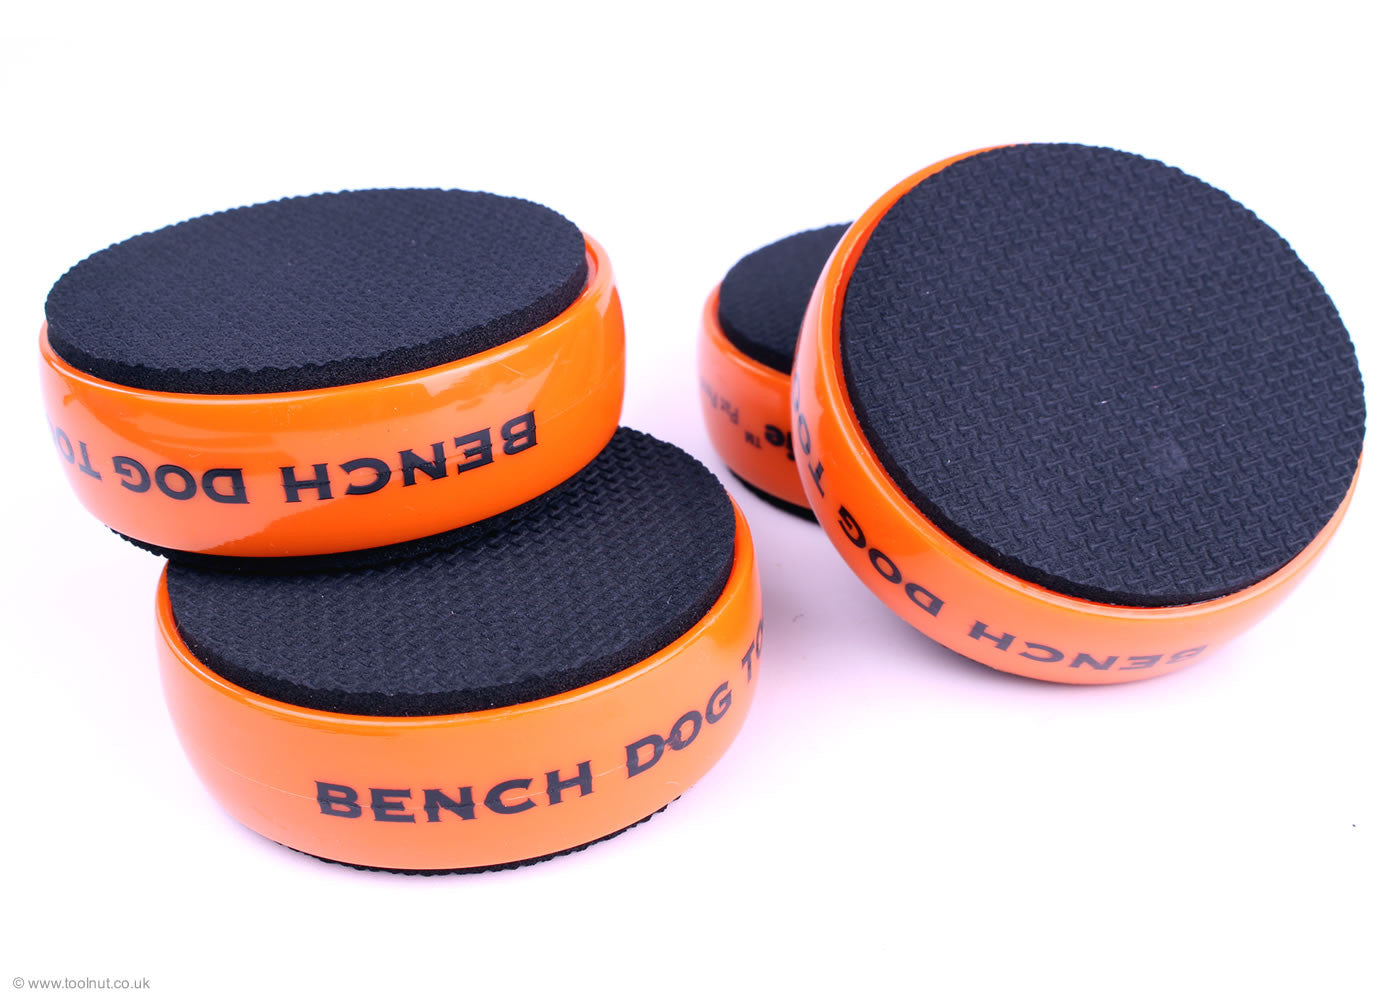 Bench Dog Bench Cookies 4 Pack Toolnut